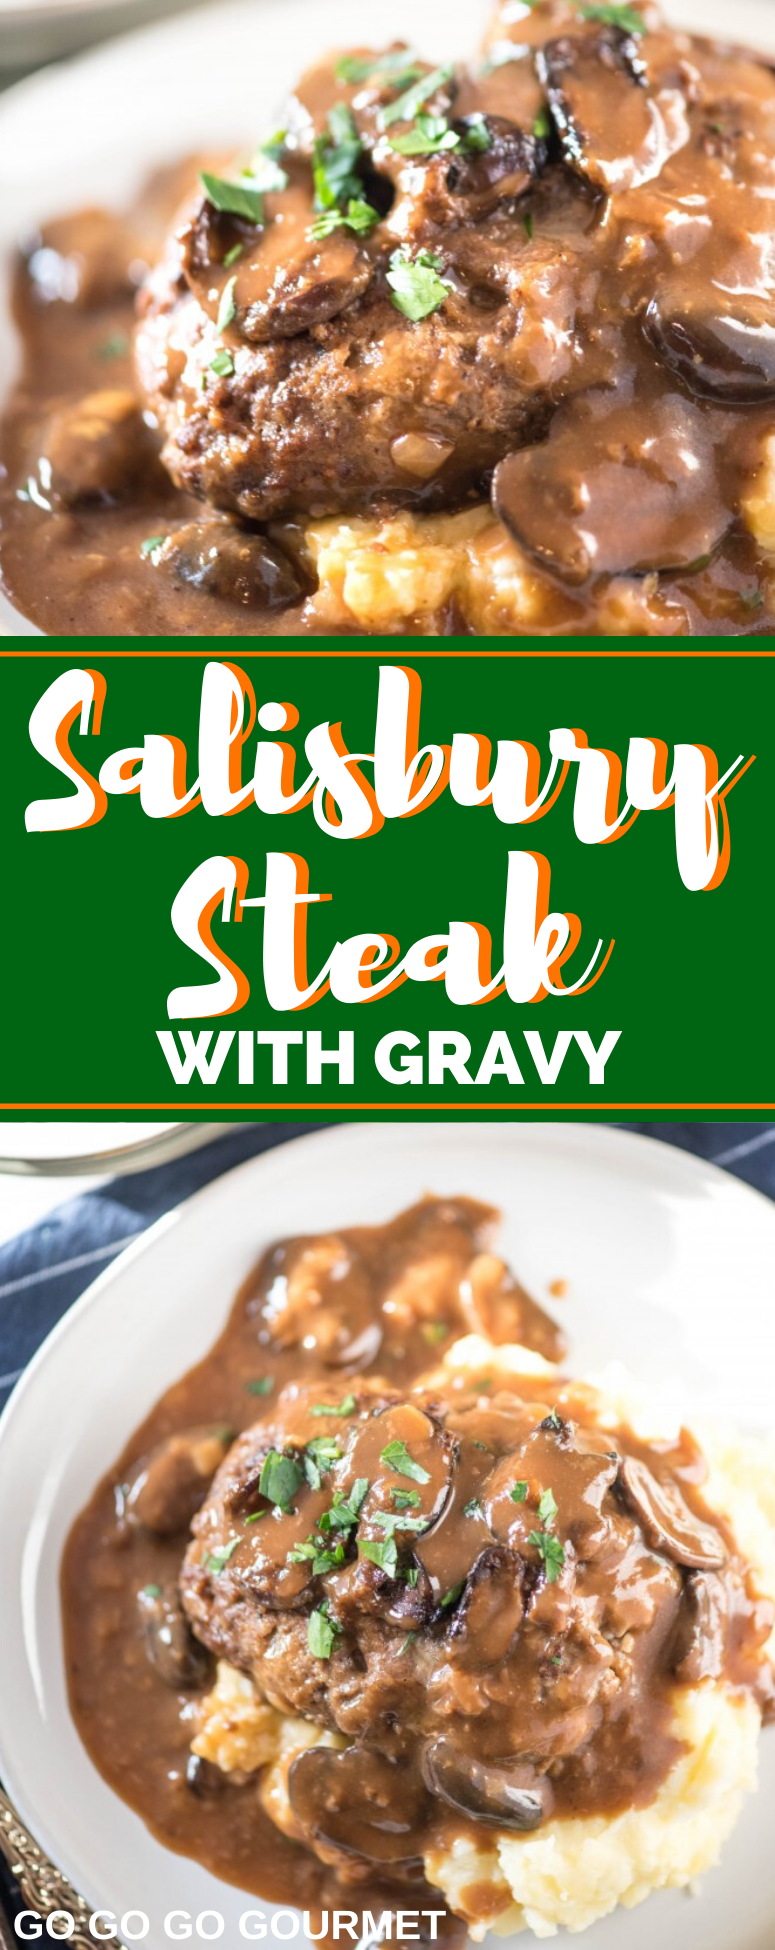 This Easy Salisbury Steak is so delicious, it even rivals the Pioneer Woman recipe! Serve it alongside a potato casserole for a dinner that everyone will love! #salisburysteak #pioneerwomansalisburysteak #comfortfood #gogogogourmet via @gogogogourmet